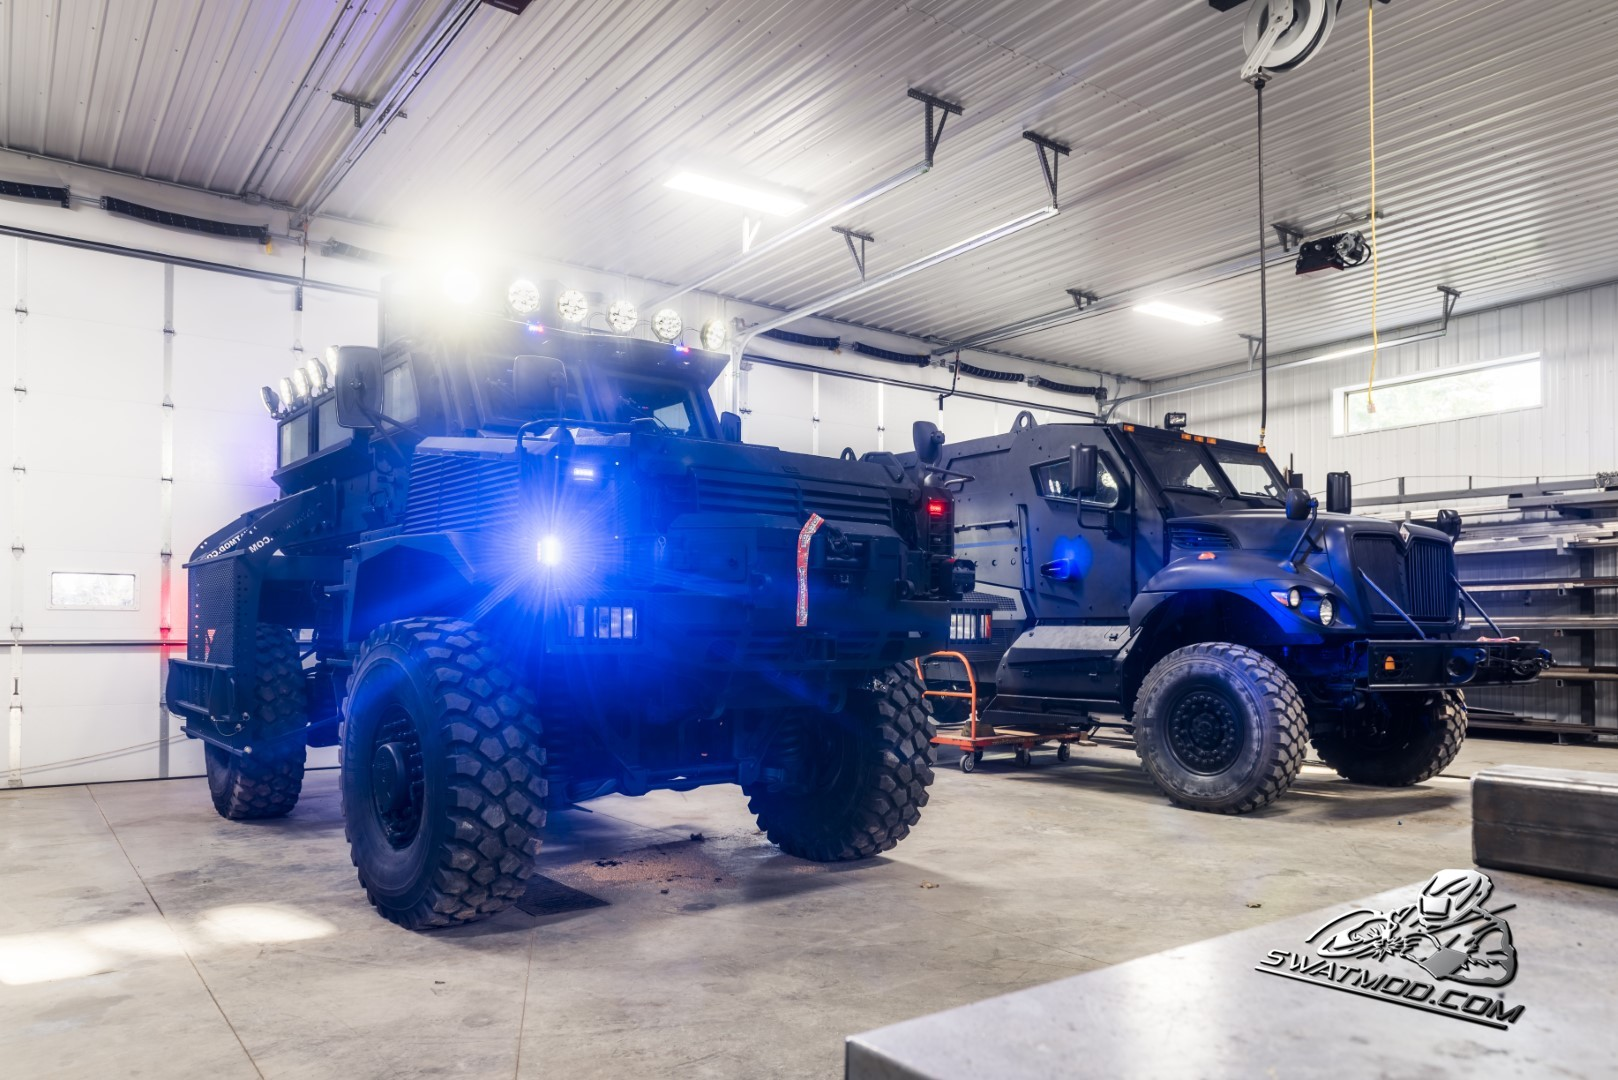 Law Enforcement RG 31 MRAP